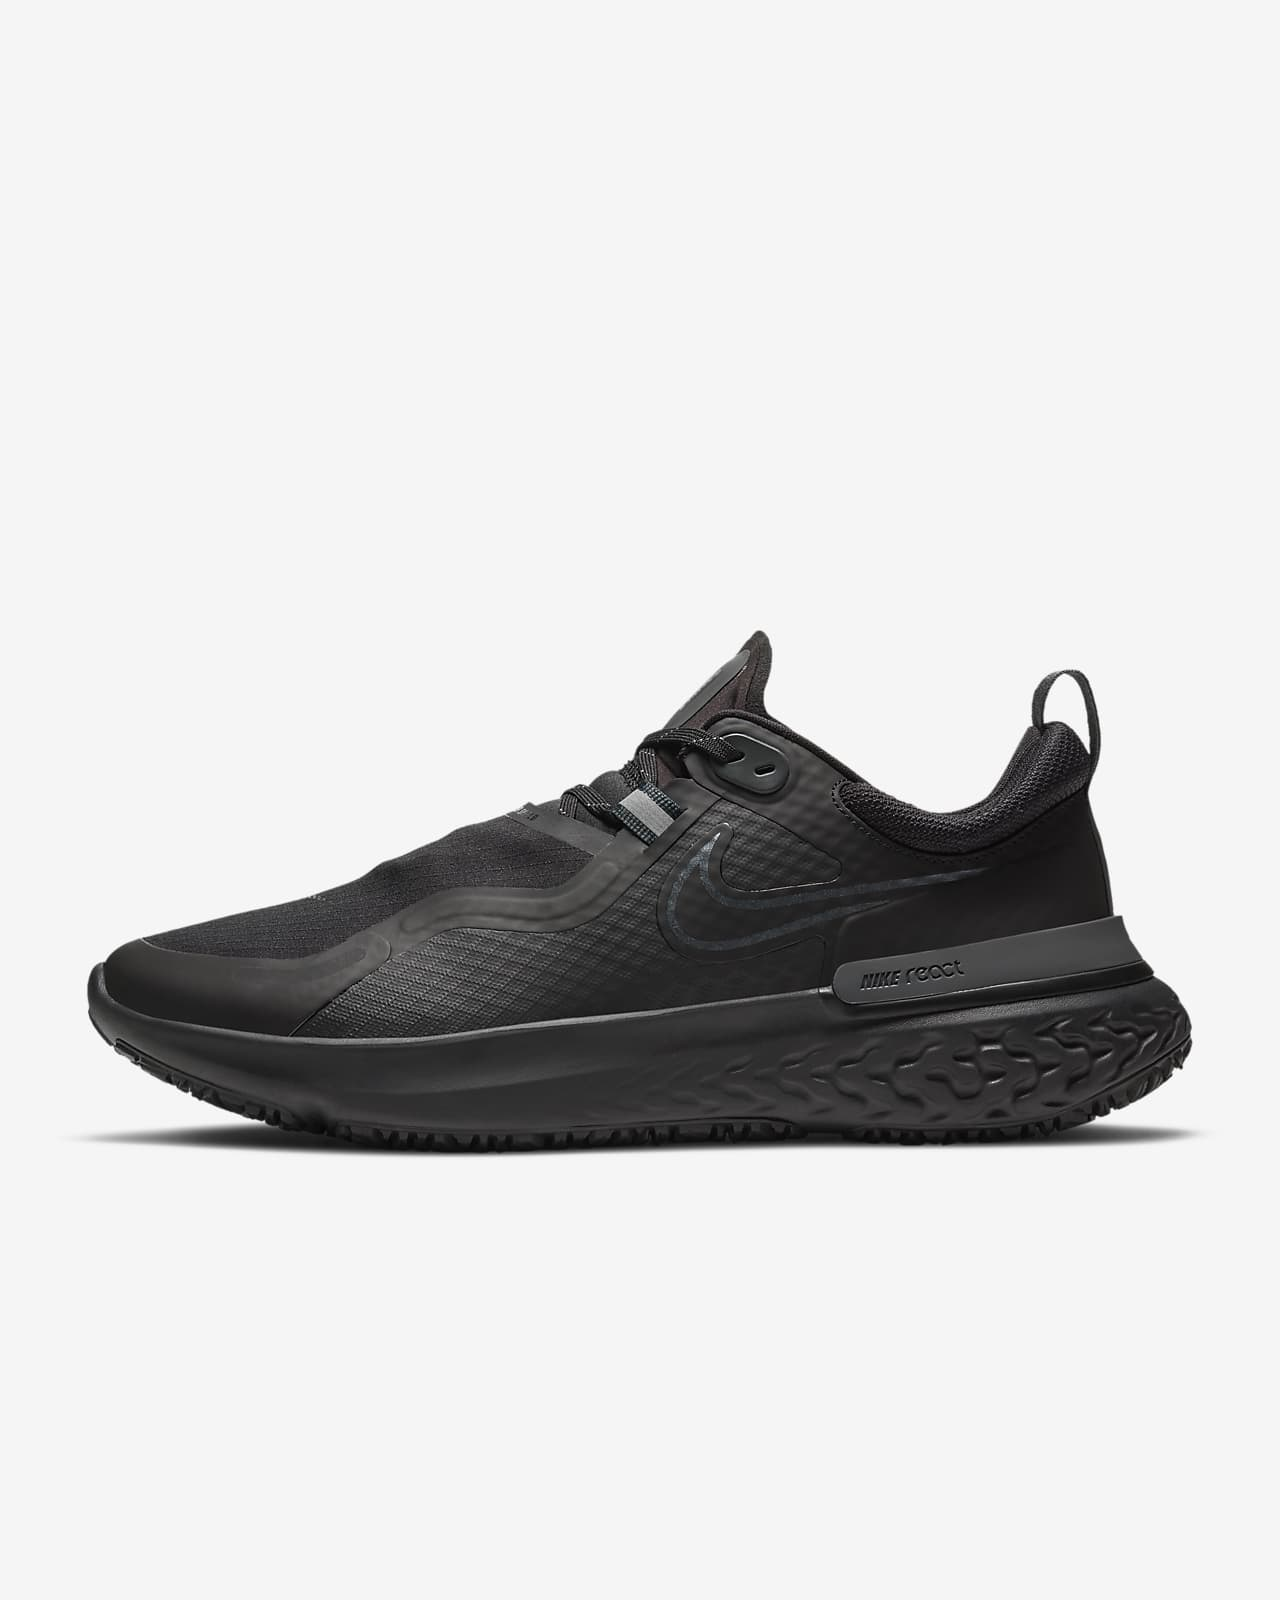 Chaussure de running Nike React Miler Shield pour Homme